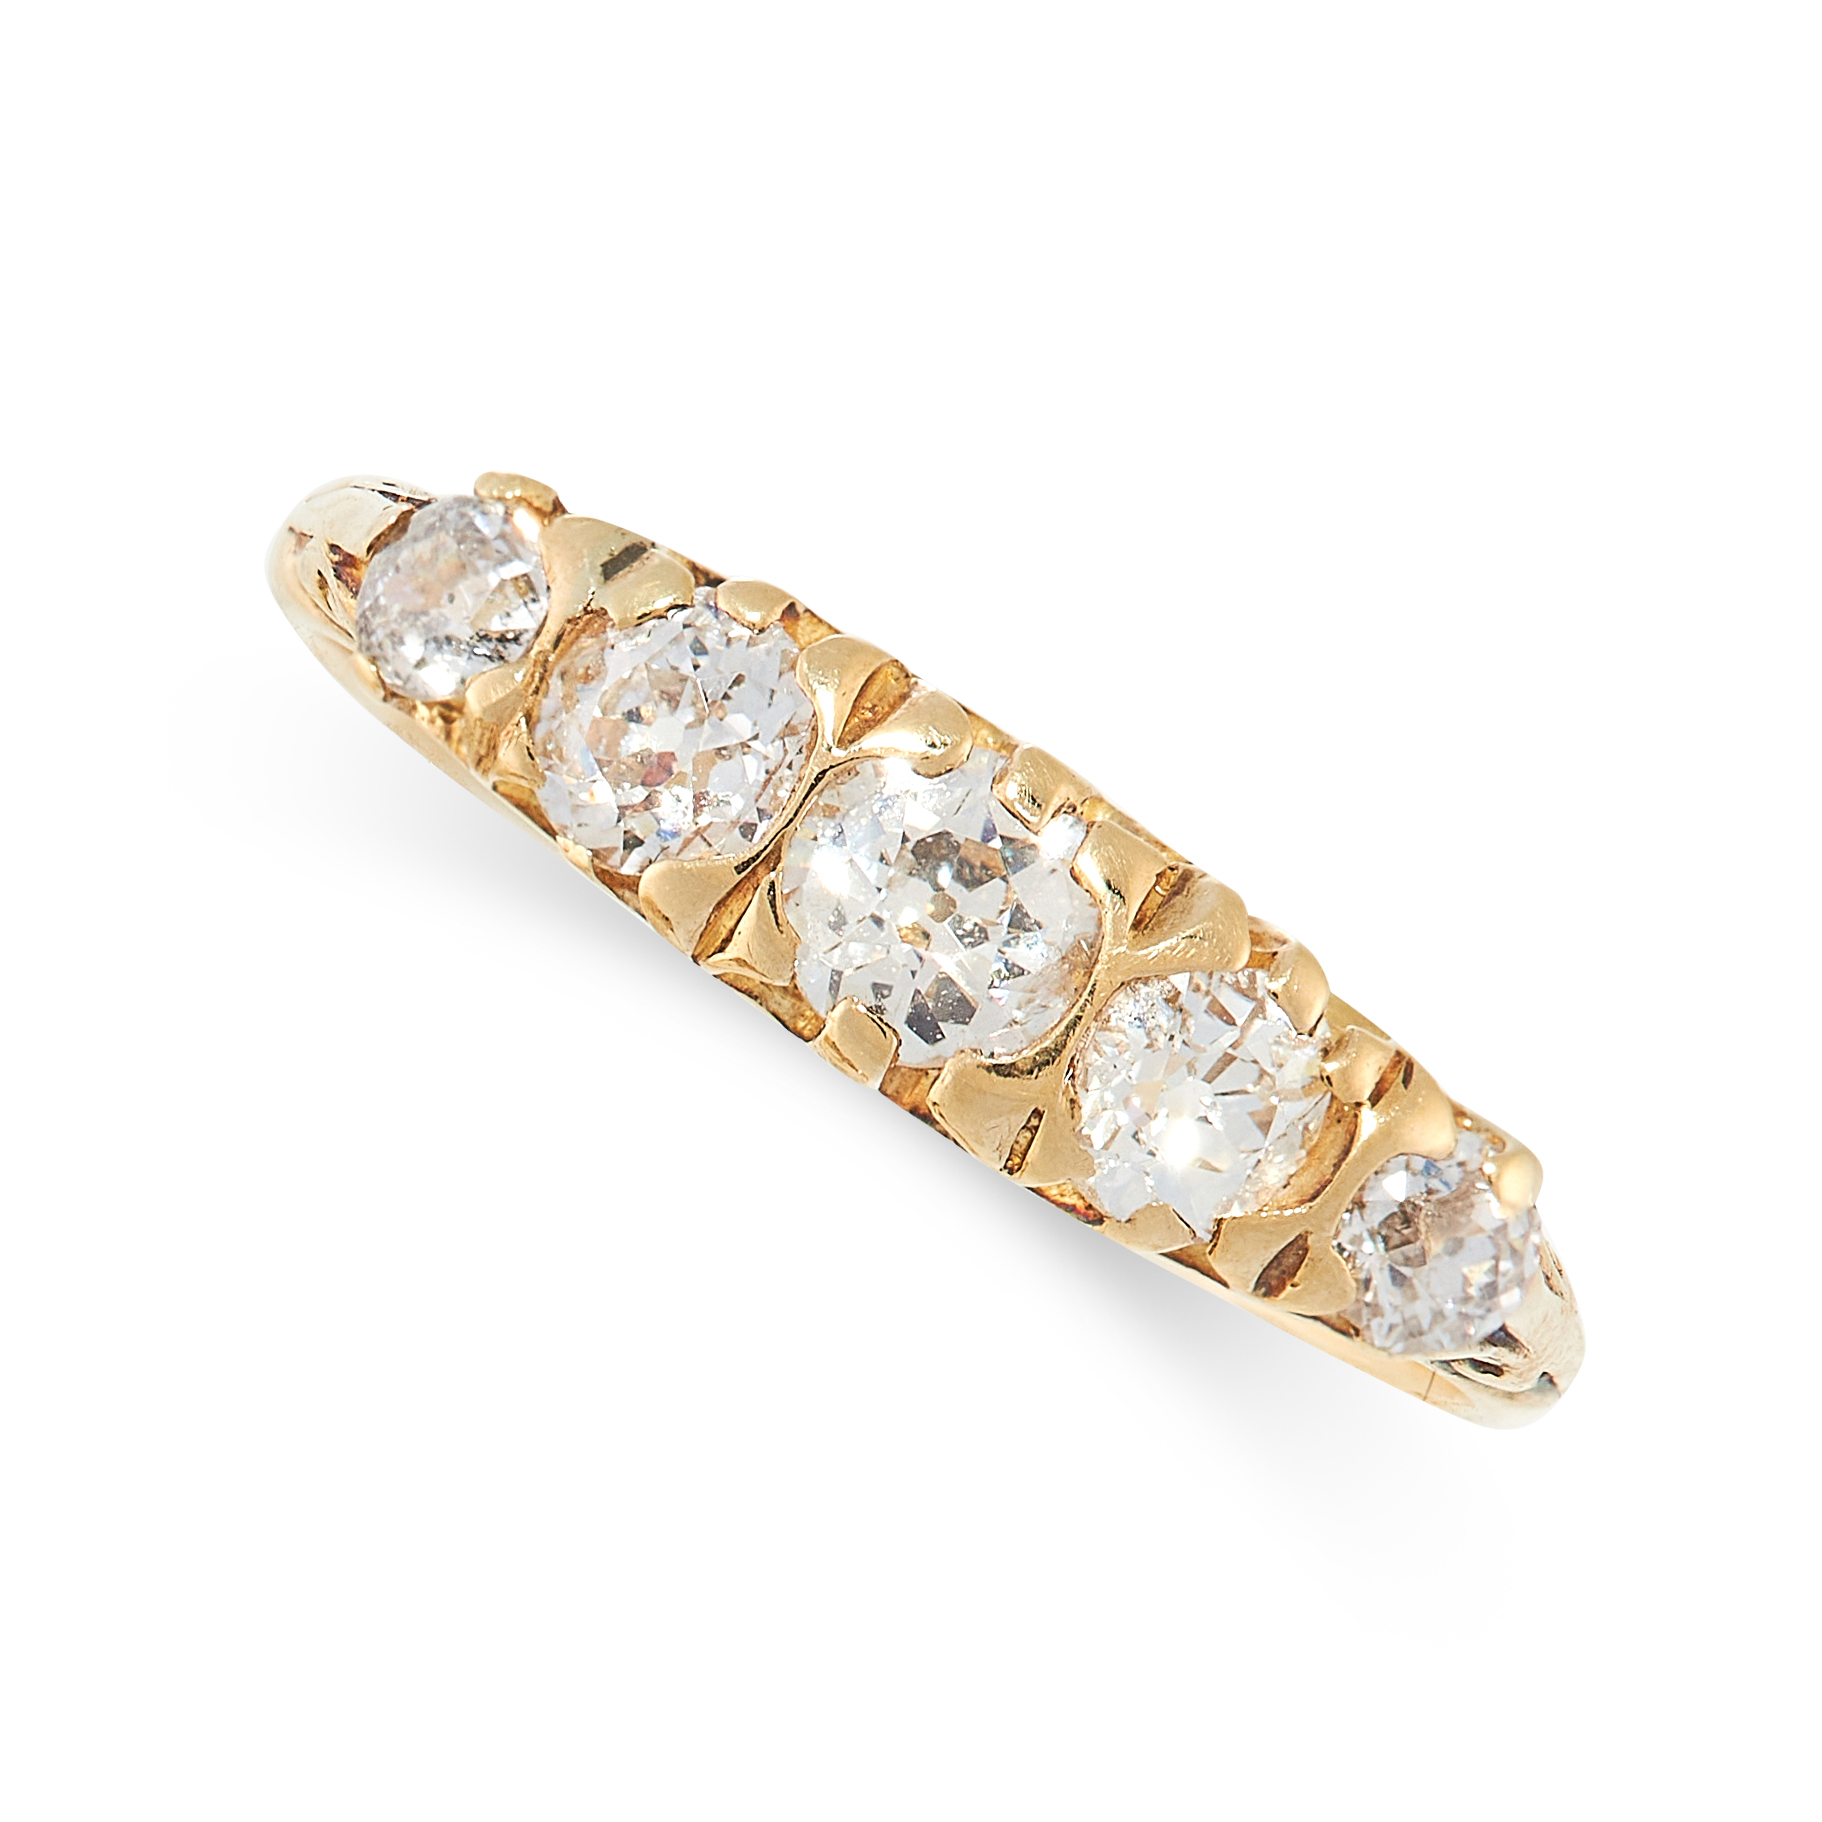 A DIAMOND FIVE STONE RING in 18ct yellow gold, set with five graduated old cut diamonds, British